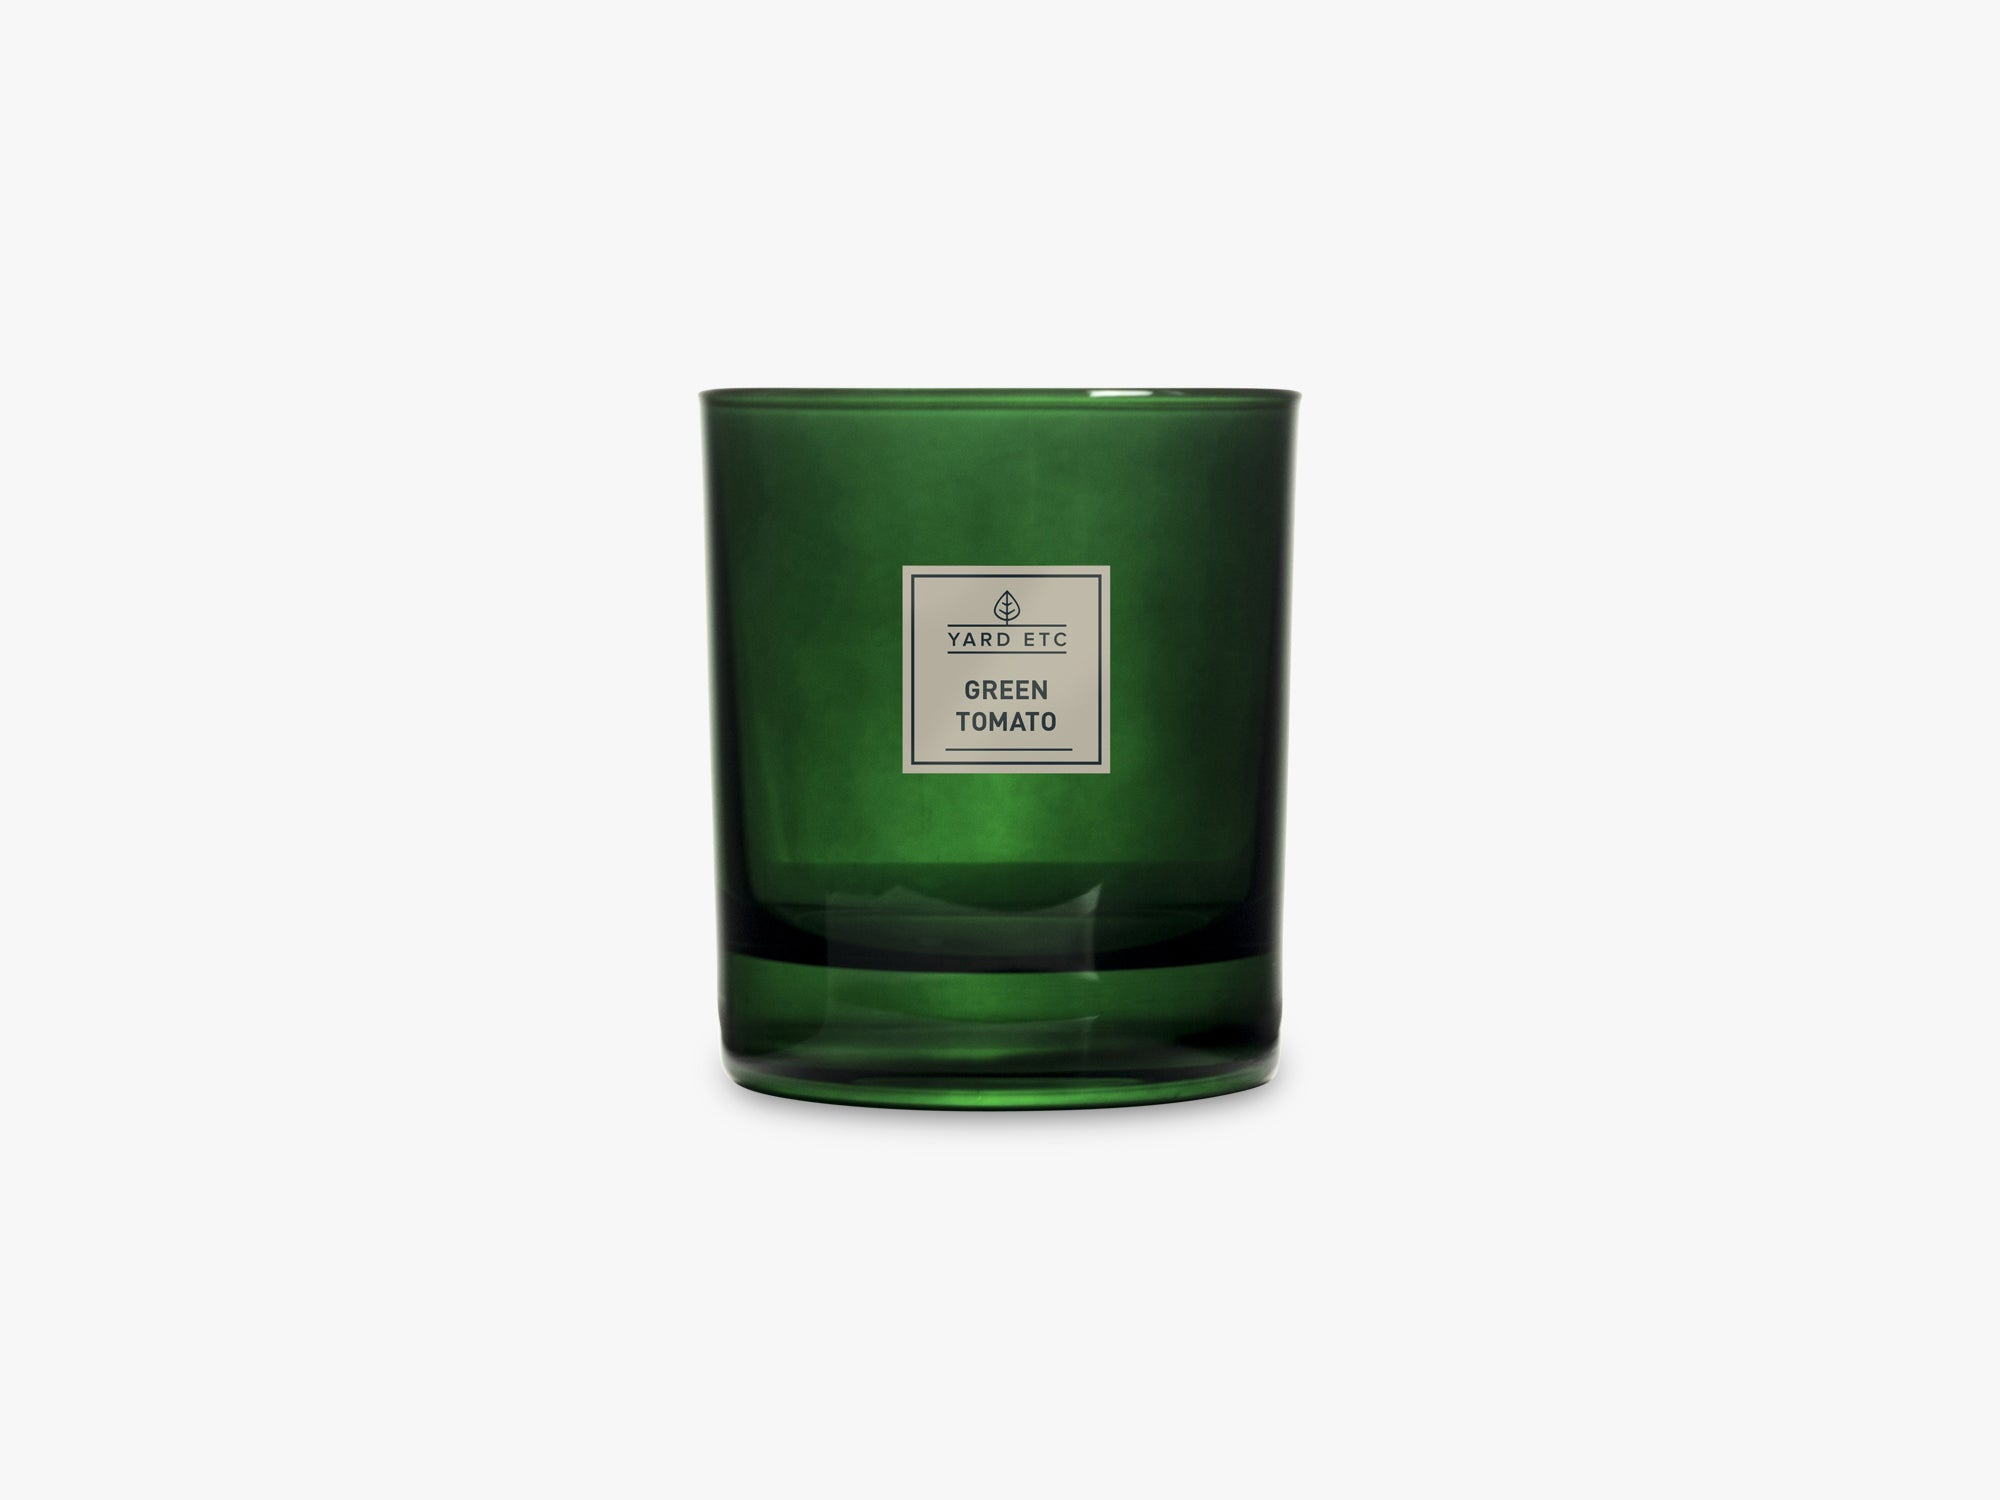 Scented Candle - 240g, Green Tomato fra Yard Etc